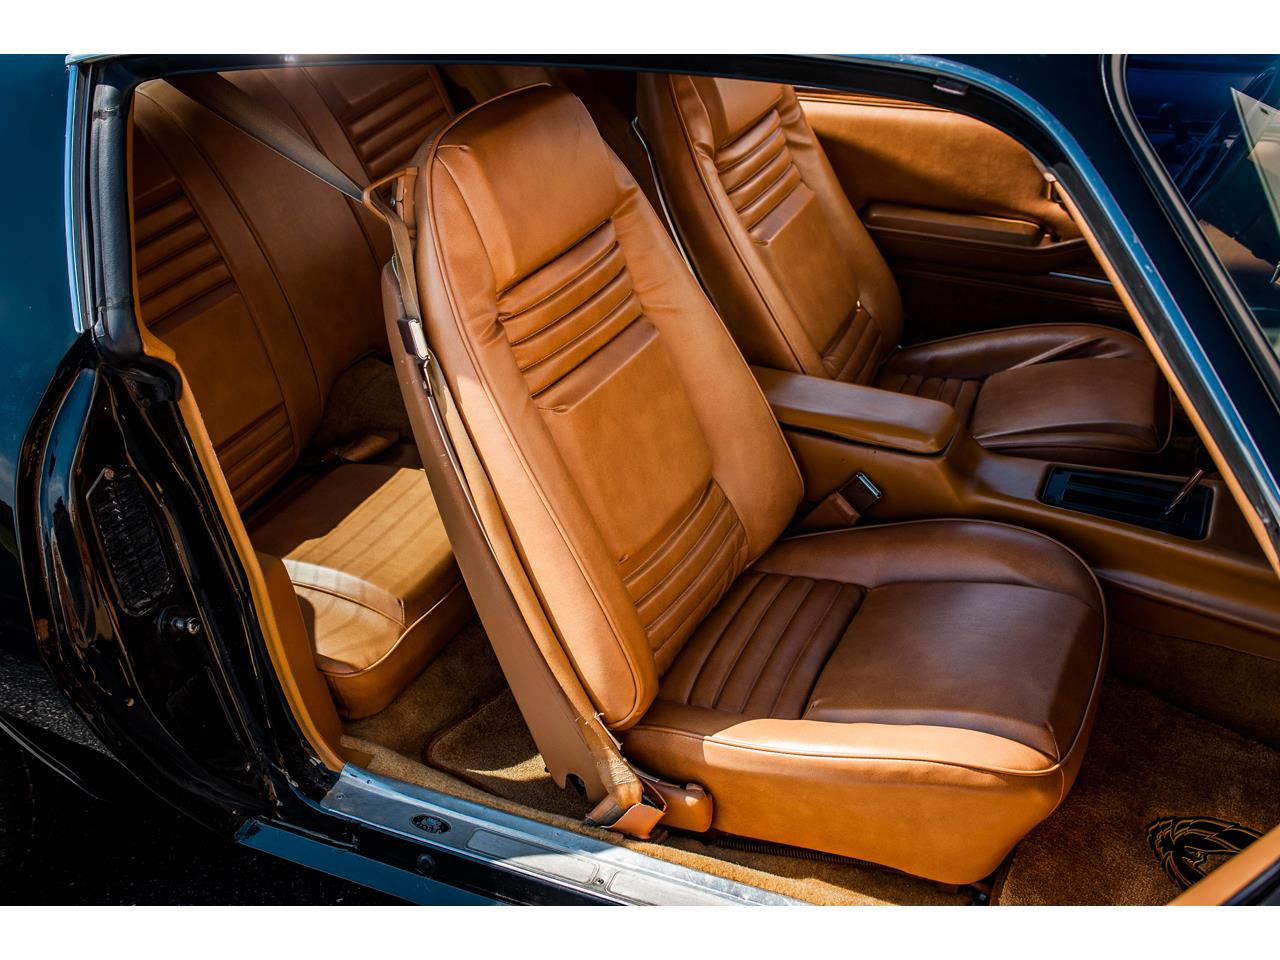 Large Picture of 1979 Pontiac Firebird located in Illinois - $36,500.00 Offered by Gateway Classic Cars - St. Louis - QB8A